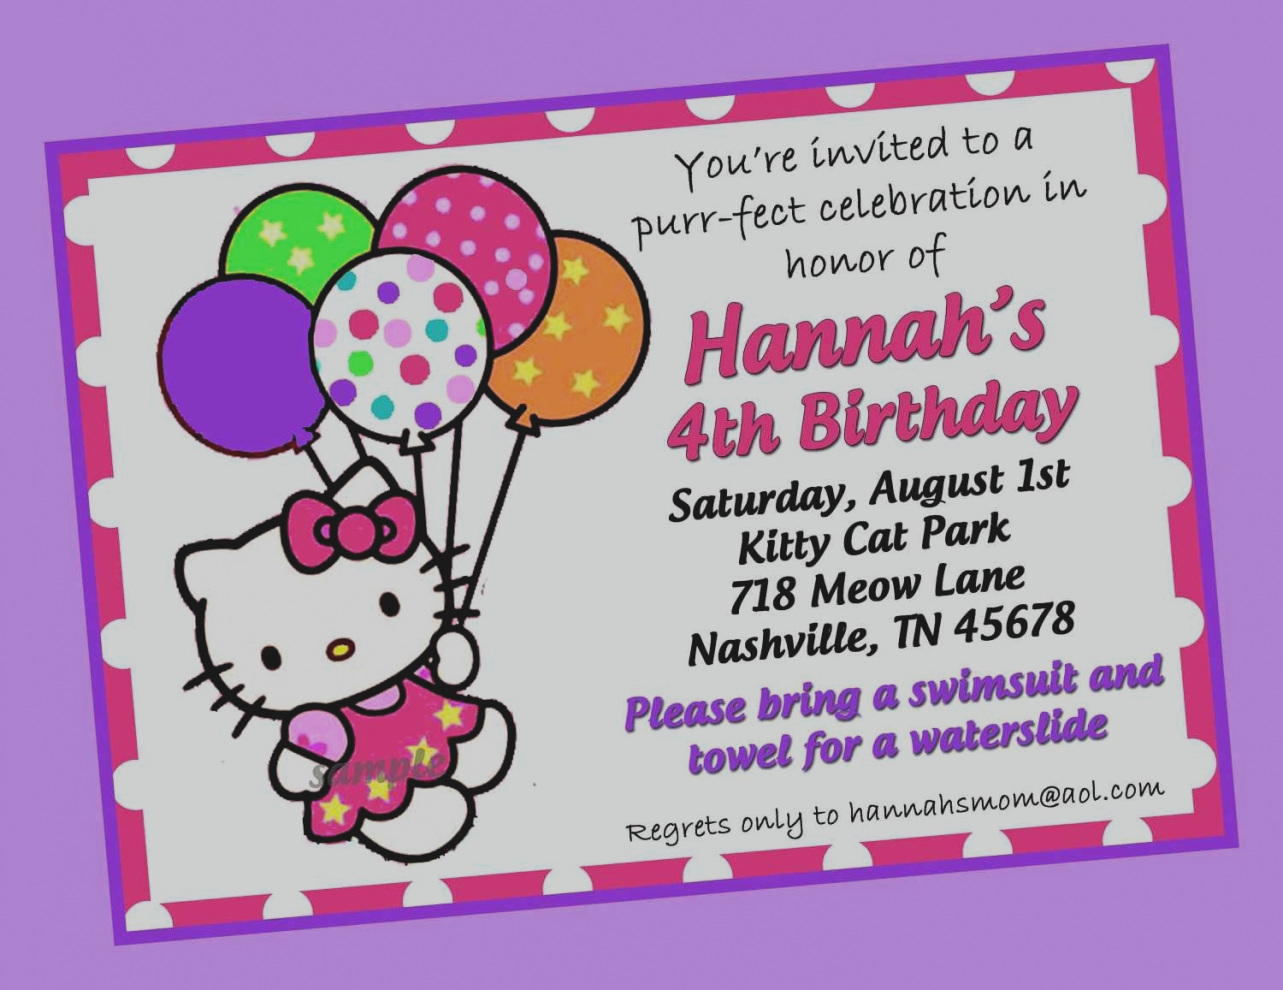 7th birthday card printable ; collection-of-7th-birthday-invitation-card-printable-tale